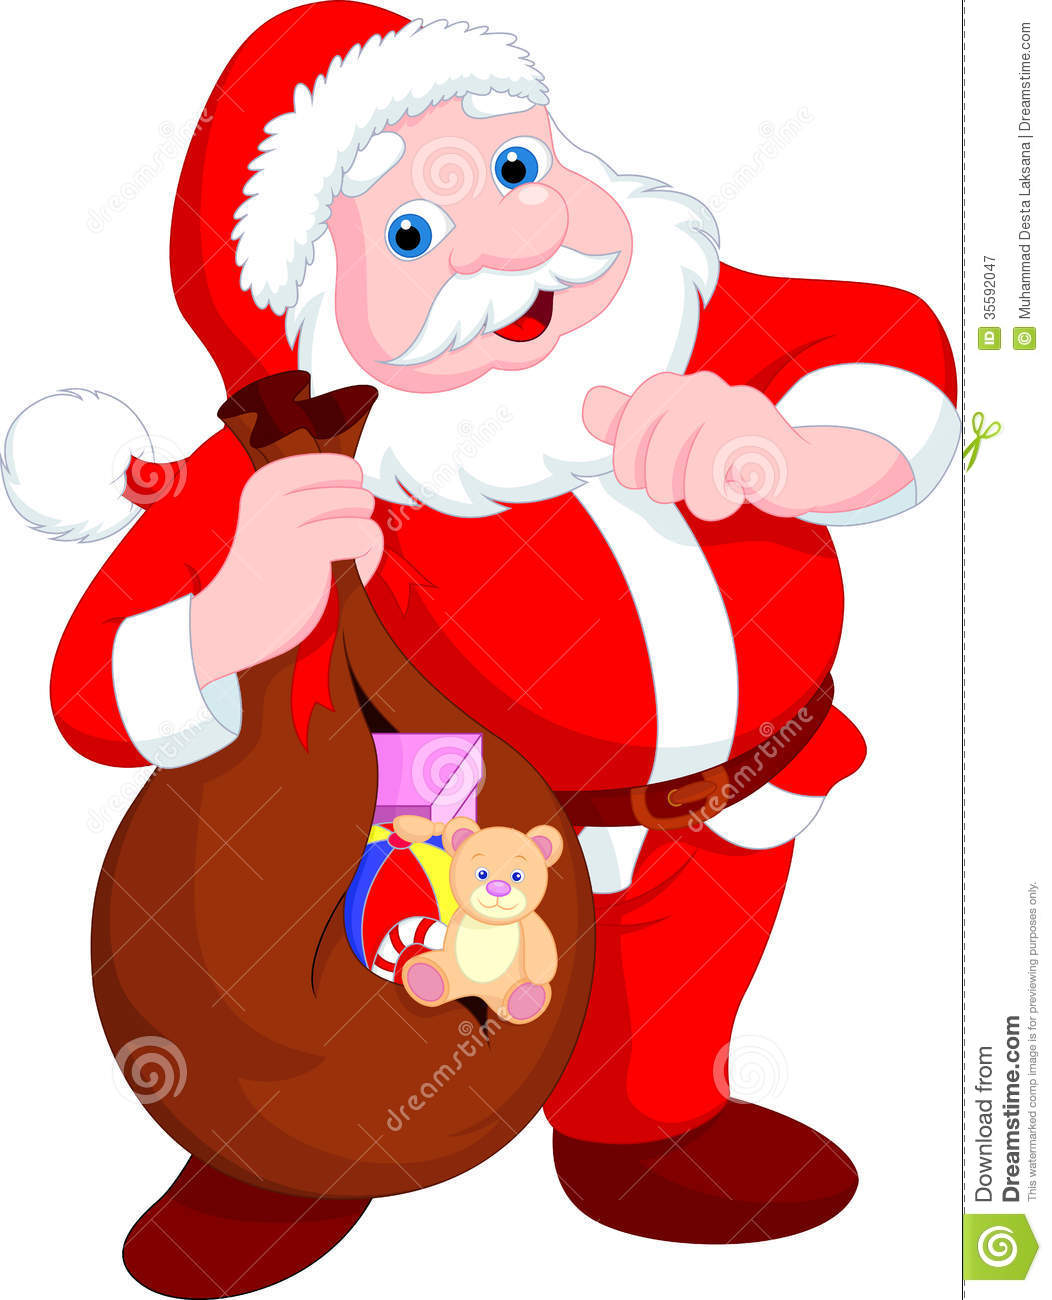 Santa claus cartoon royalty free stock photography image 35592047